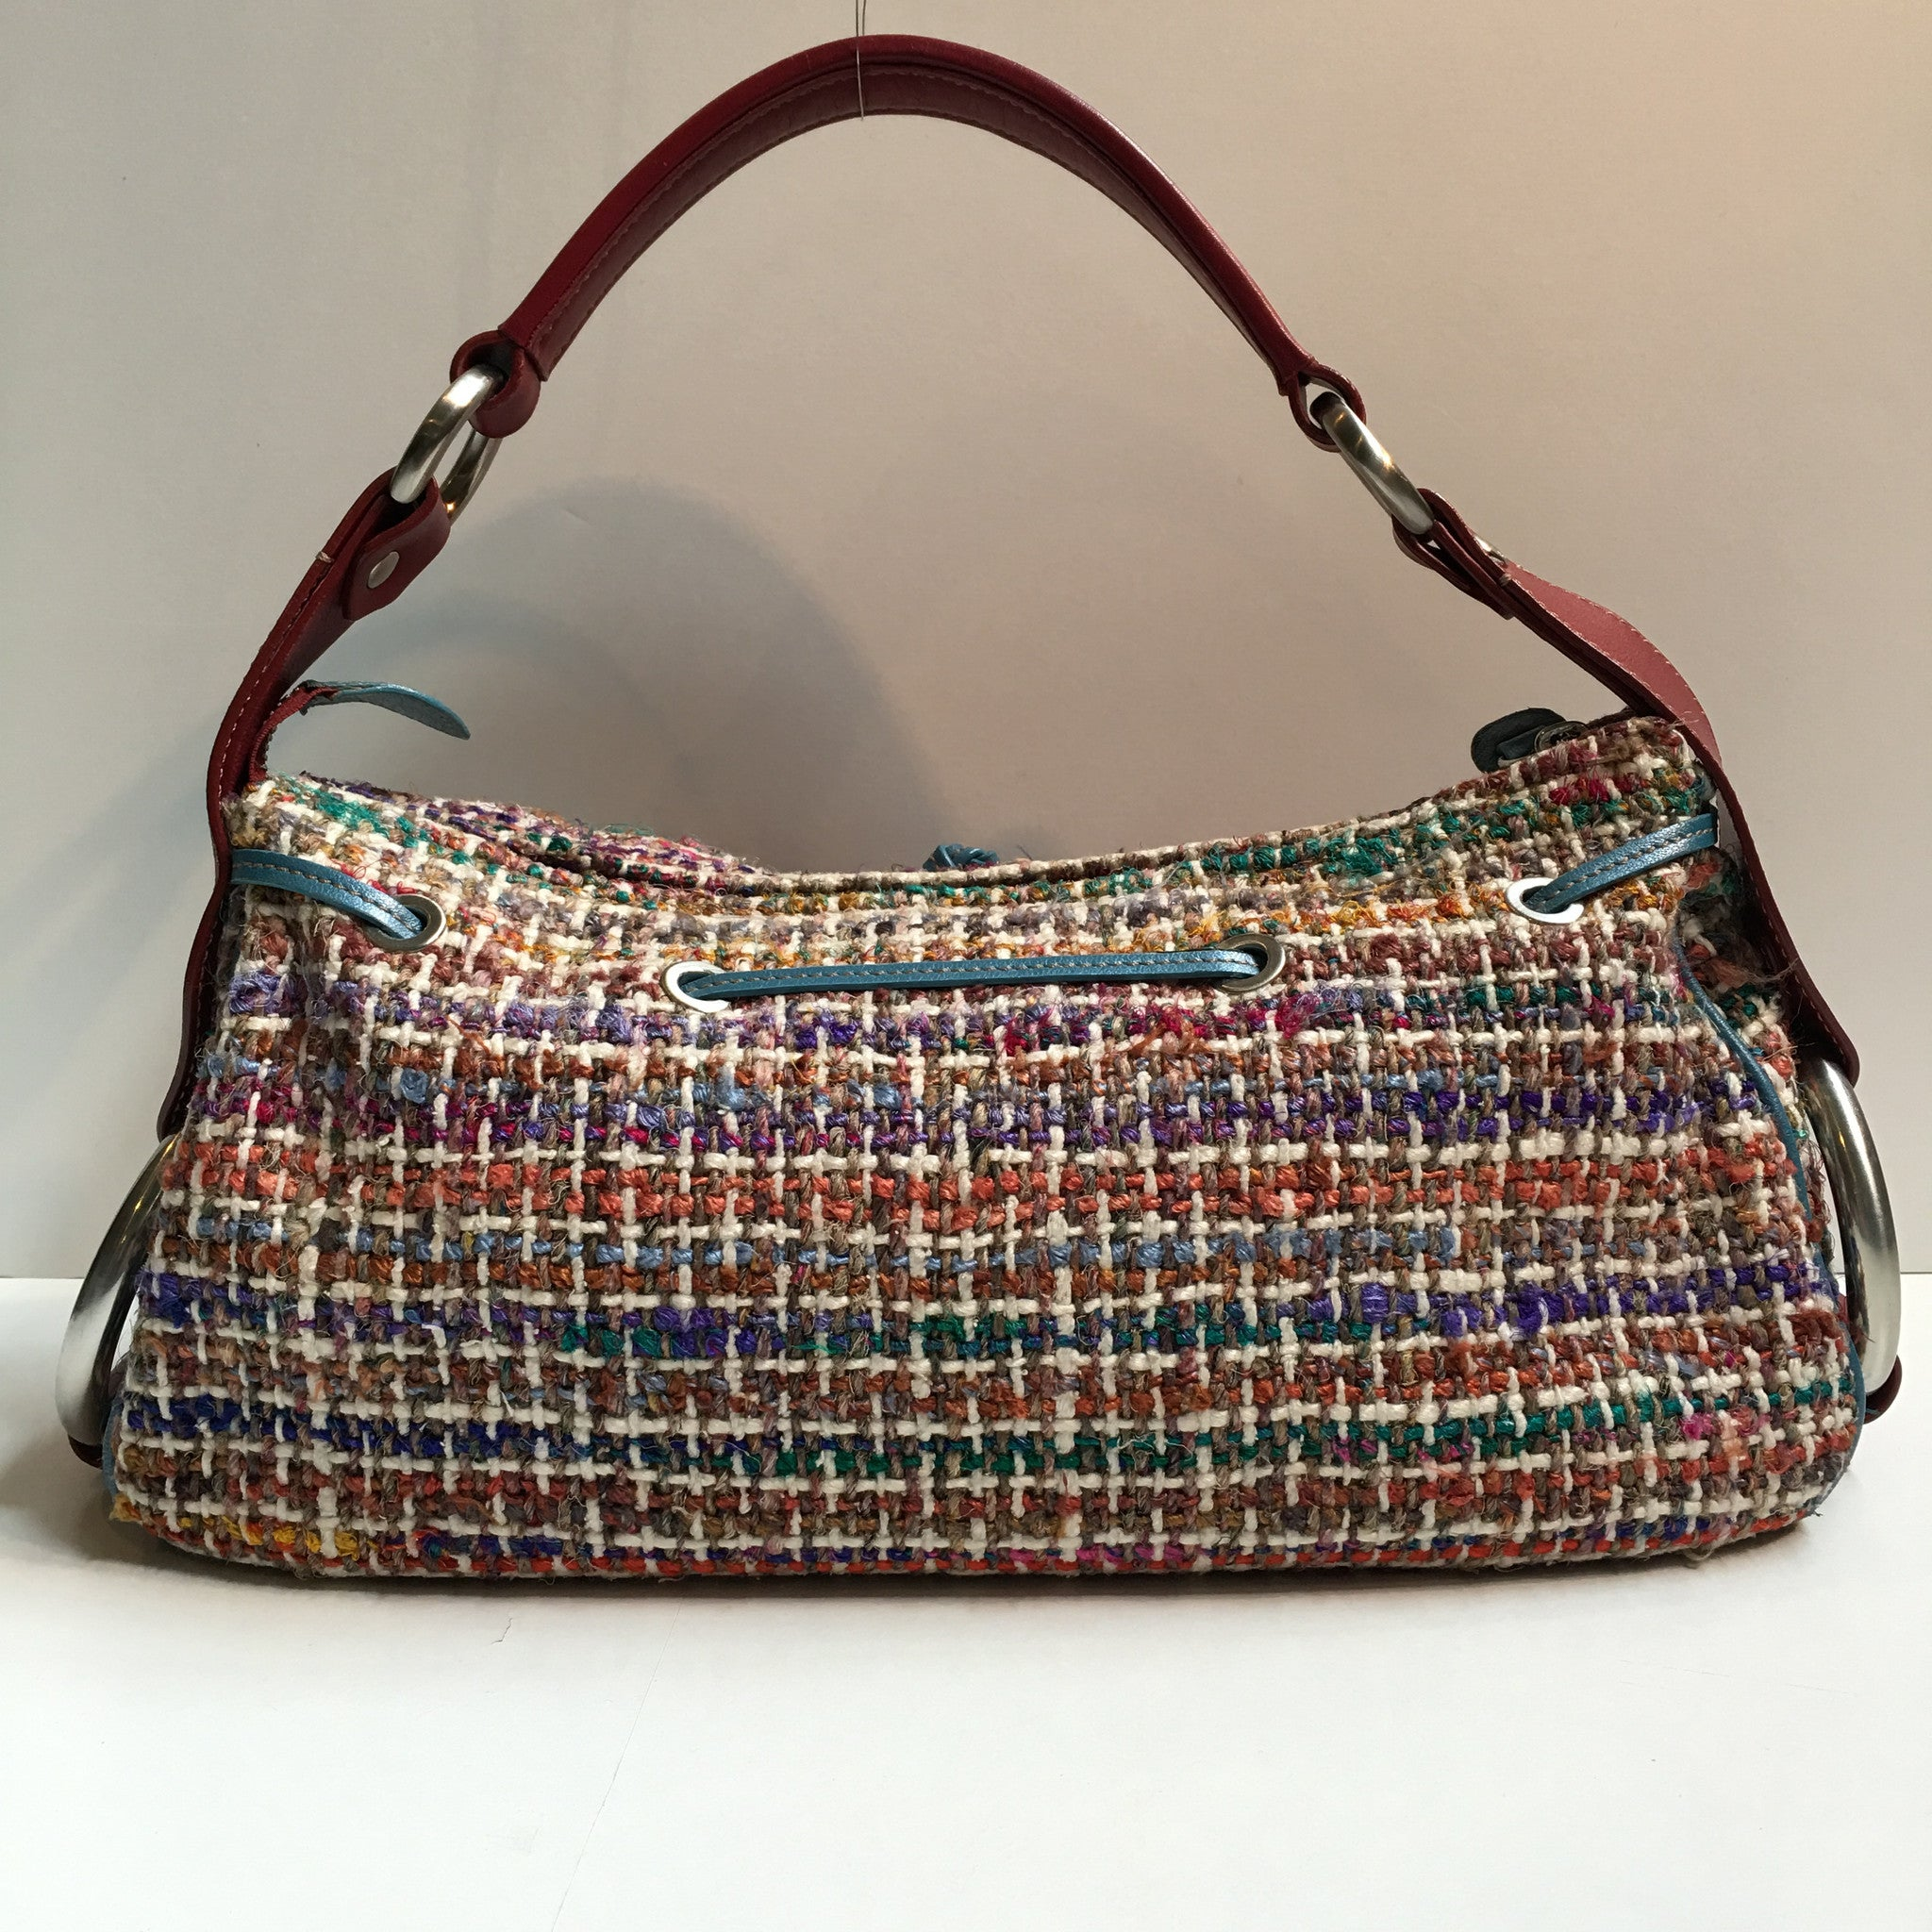 Hogan Multicolored Boucle Leather Single Strap Shoulder Handbag